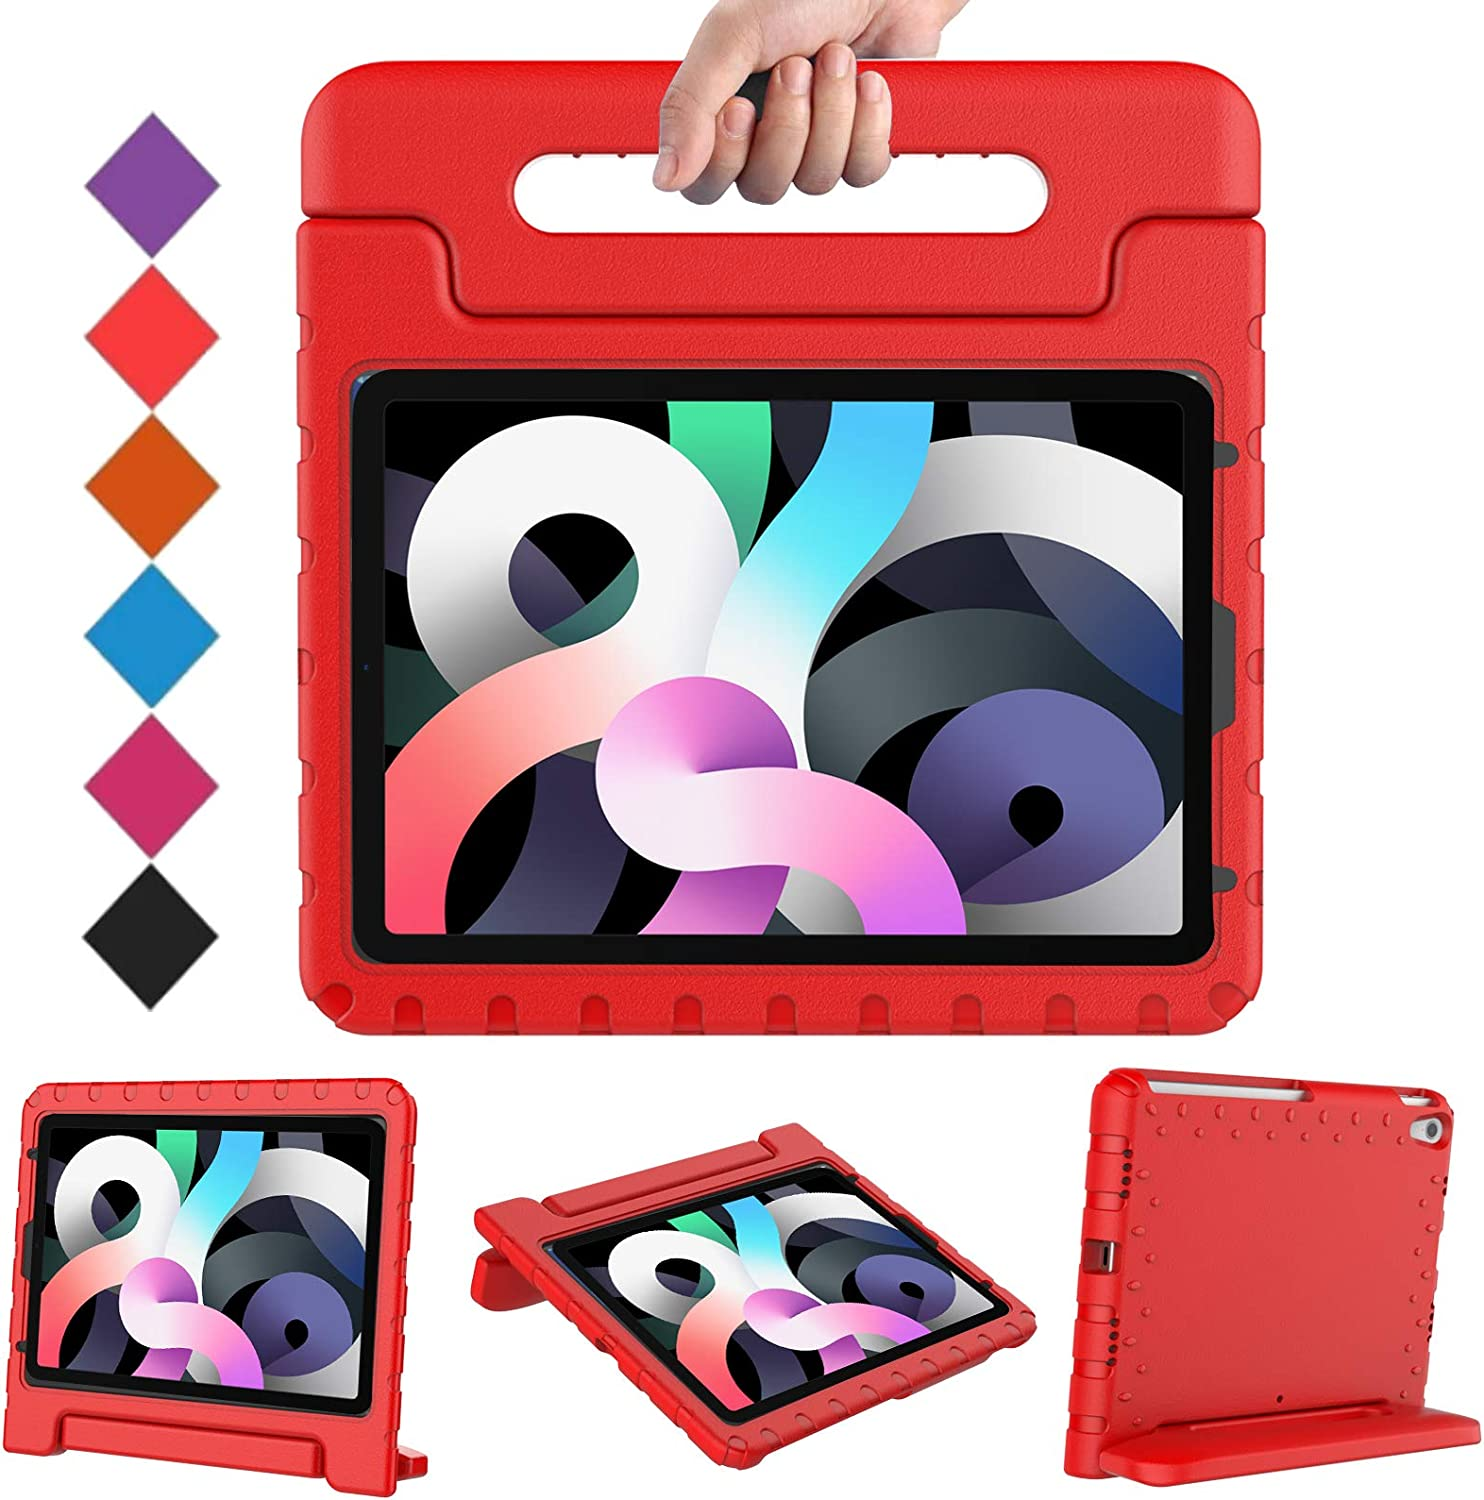 BMOUO Kids Case for iPad Air 4/iPad Air 10.9, iPad Air 4 Case, Shockproof Light Weight Convertible Handle Stand Kids Case for iPad Air 4th Generation 10.9 inch 2020 Release-Red